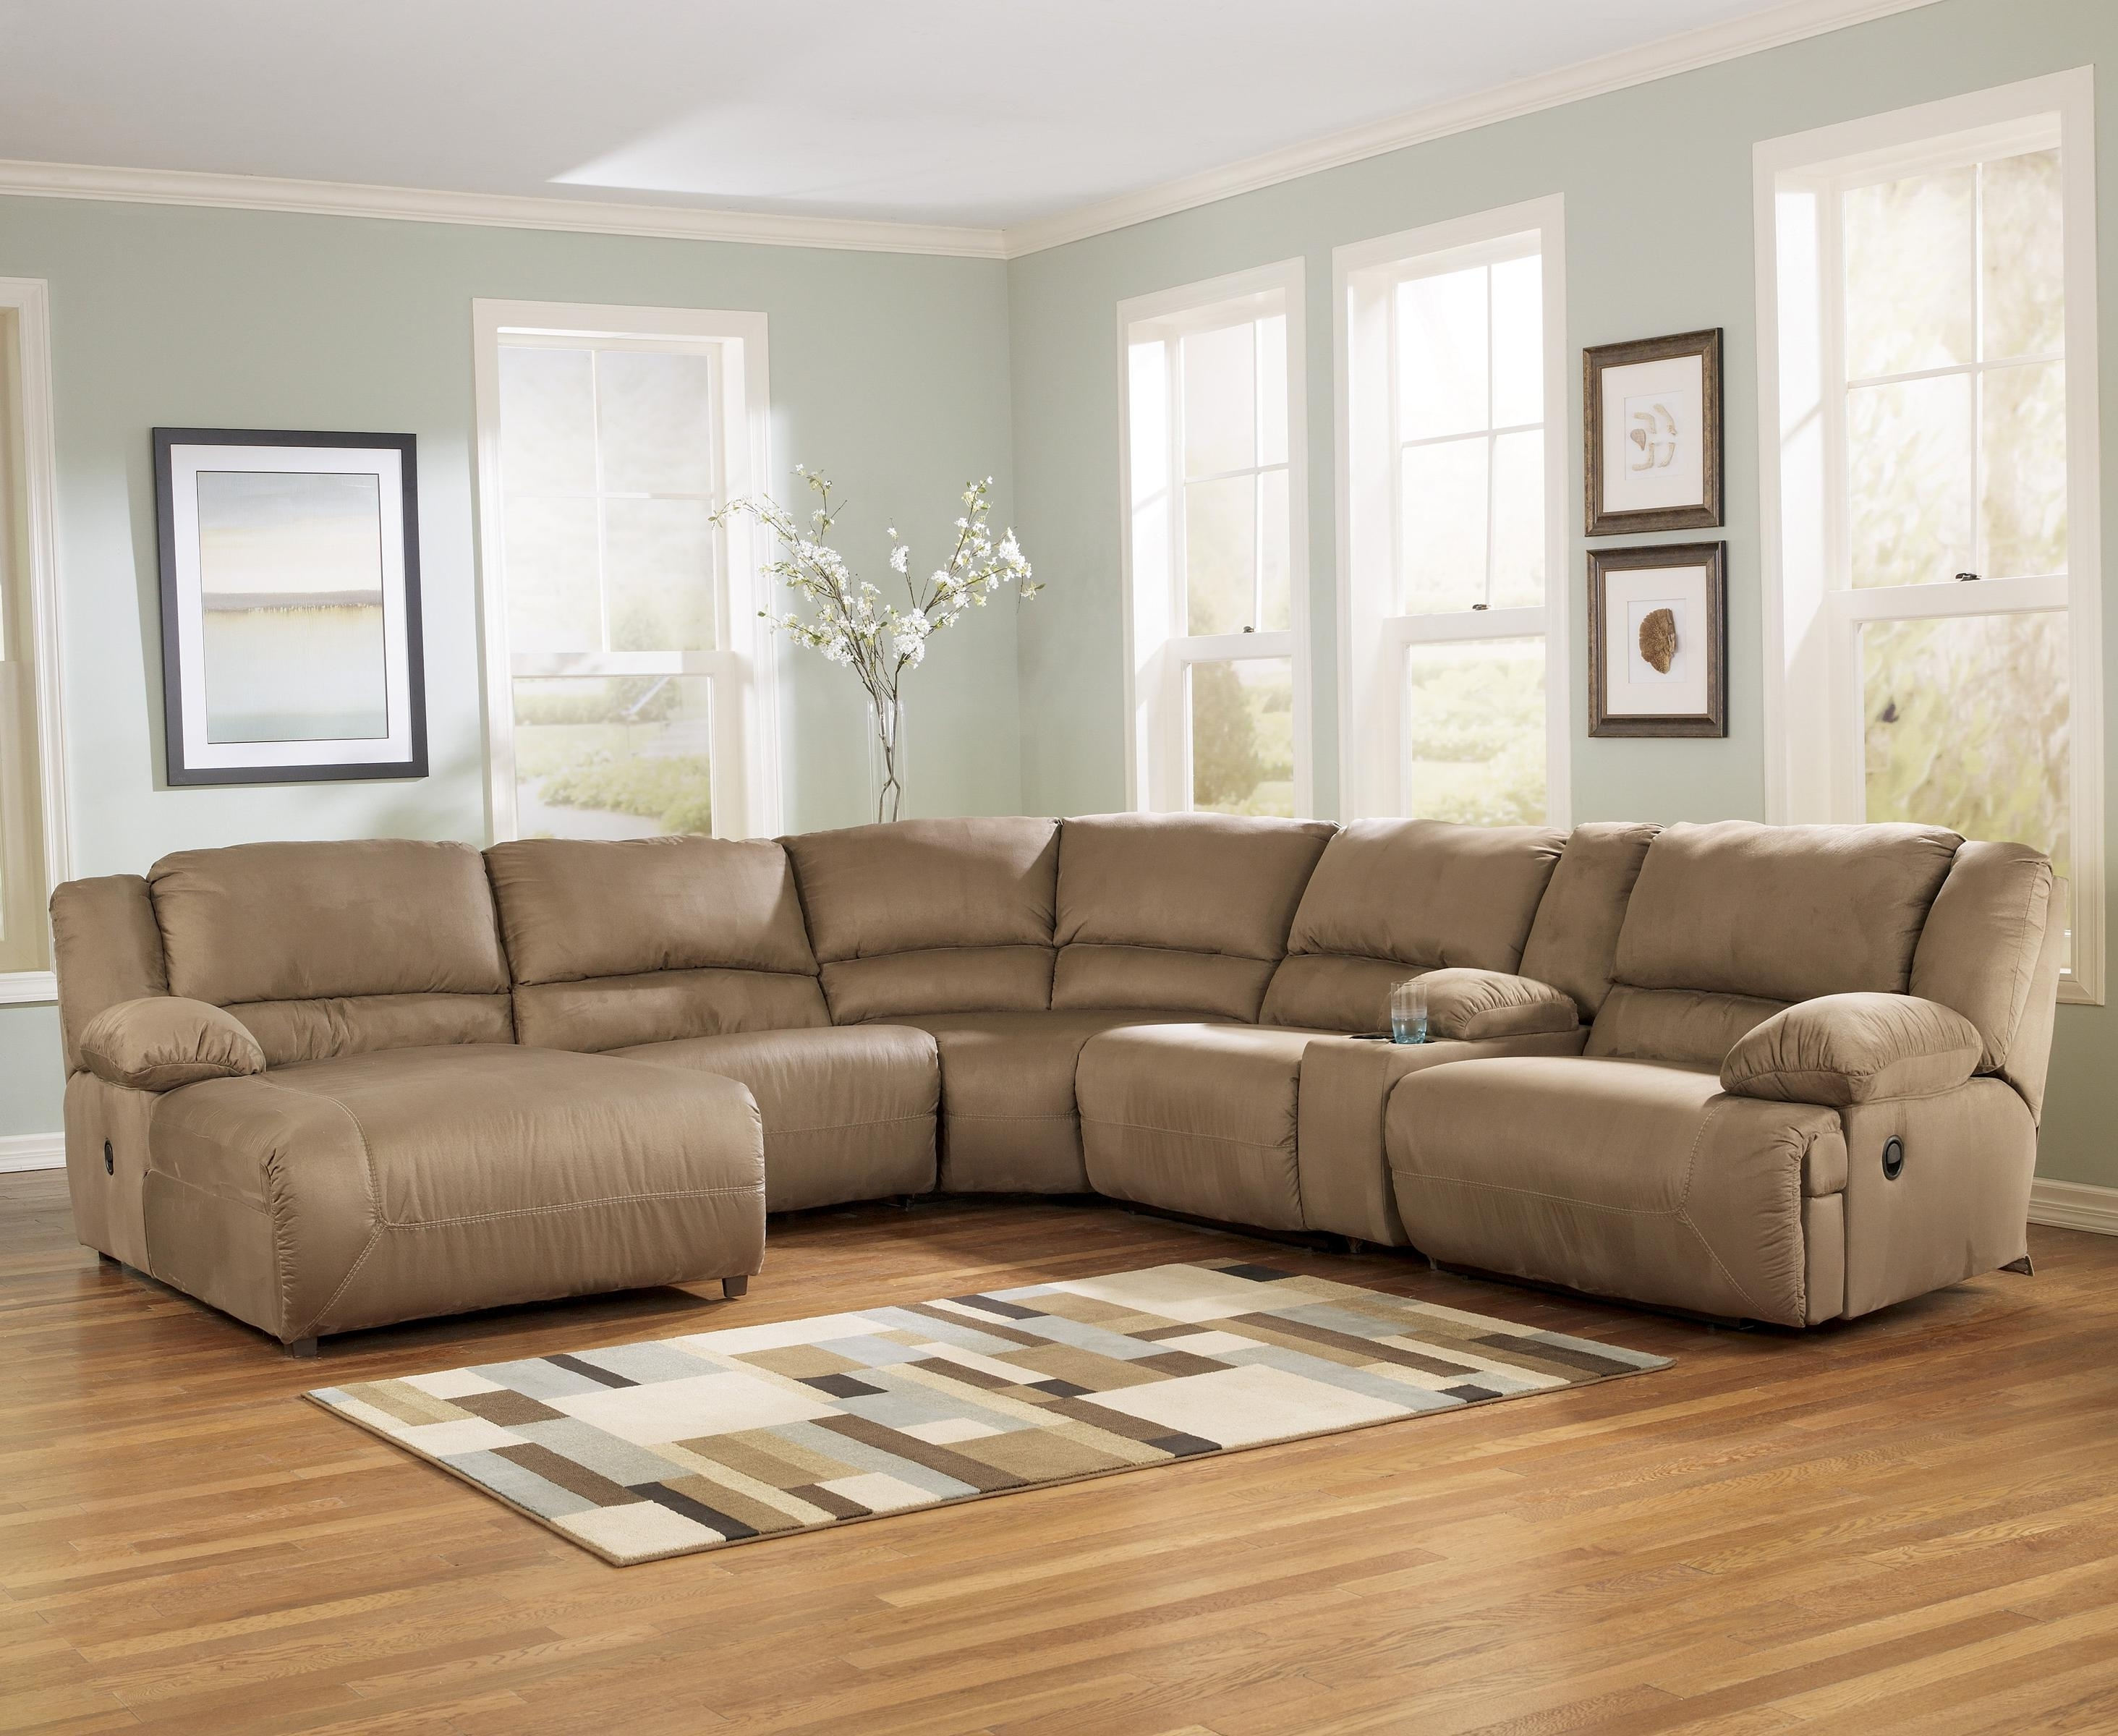 Home Furniture Sectional Sofas In Favorite Home : Cute Sectional Sofas With Recliners And Chaise Home Designs (View 8 of 20)